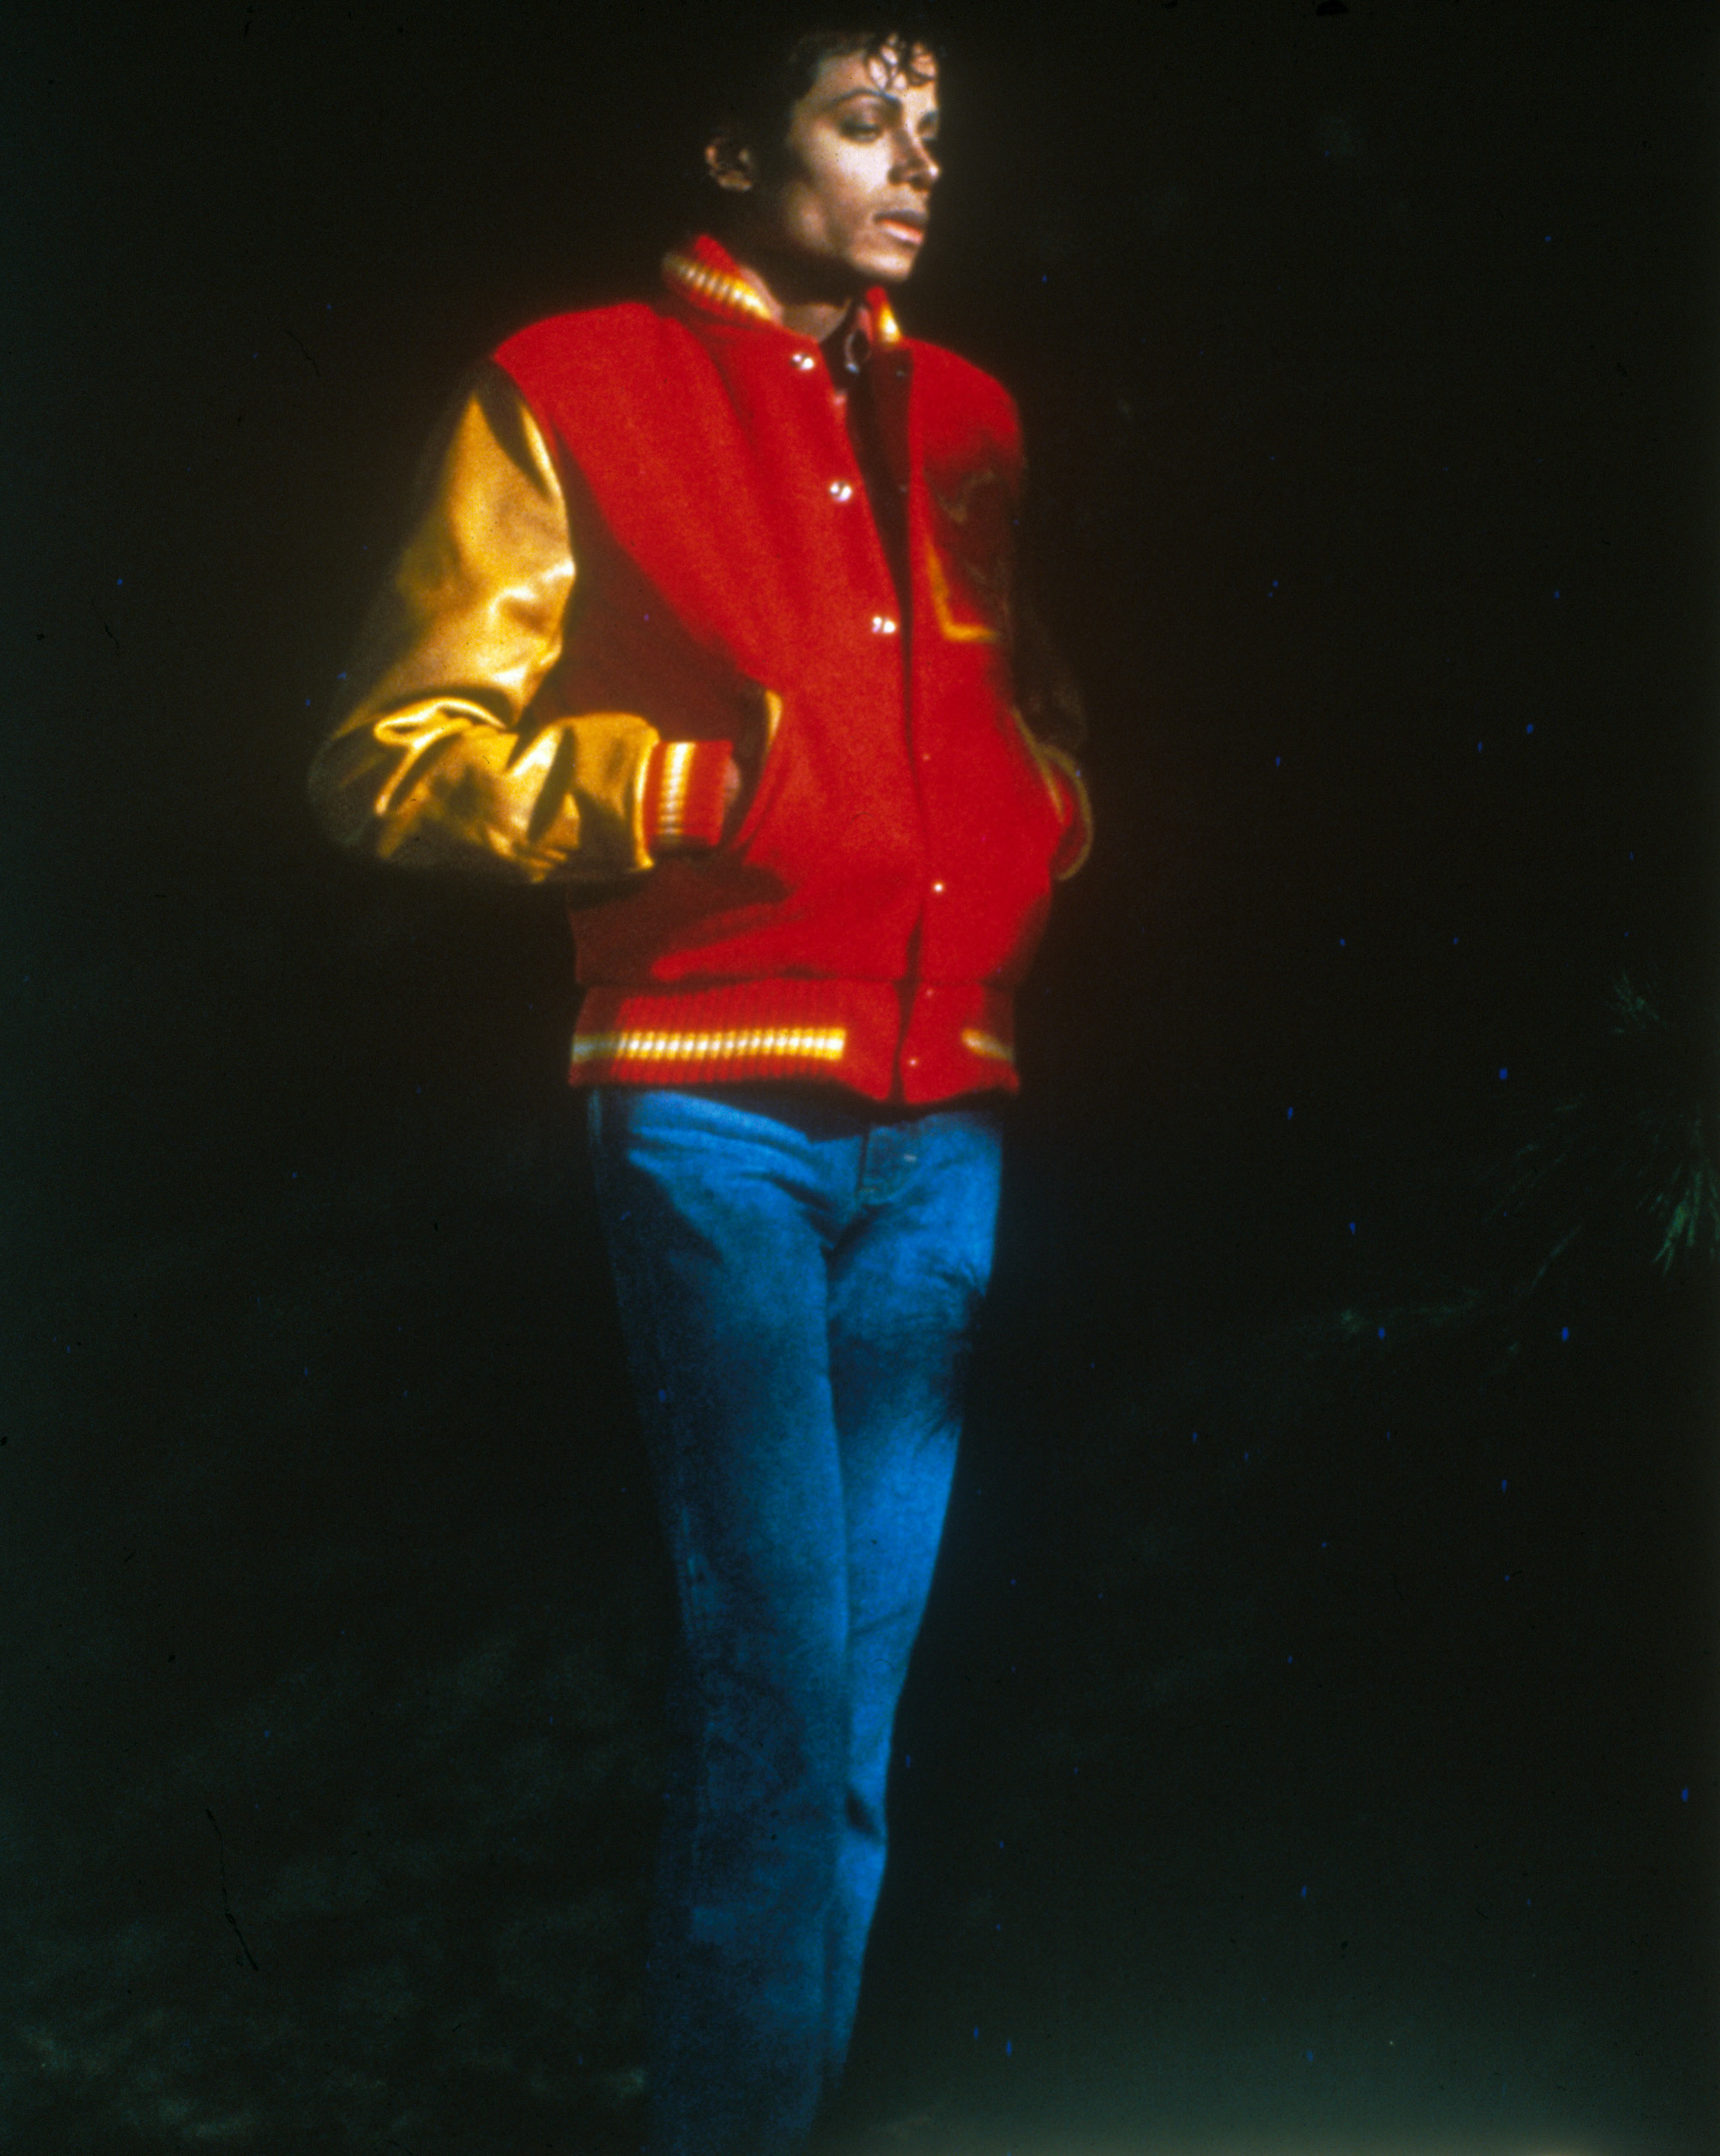 2009x2518 Michael Jackson images Thriller HD wallpaper and background photos